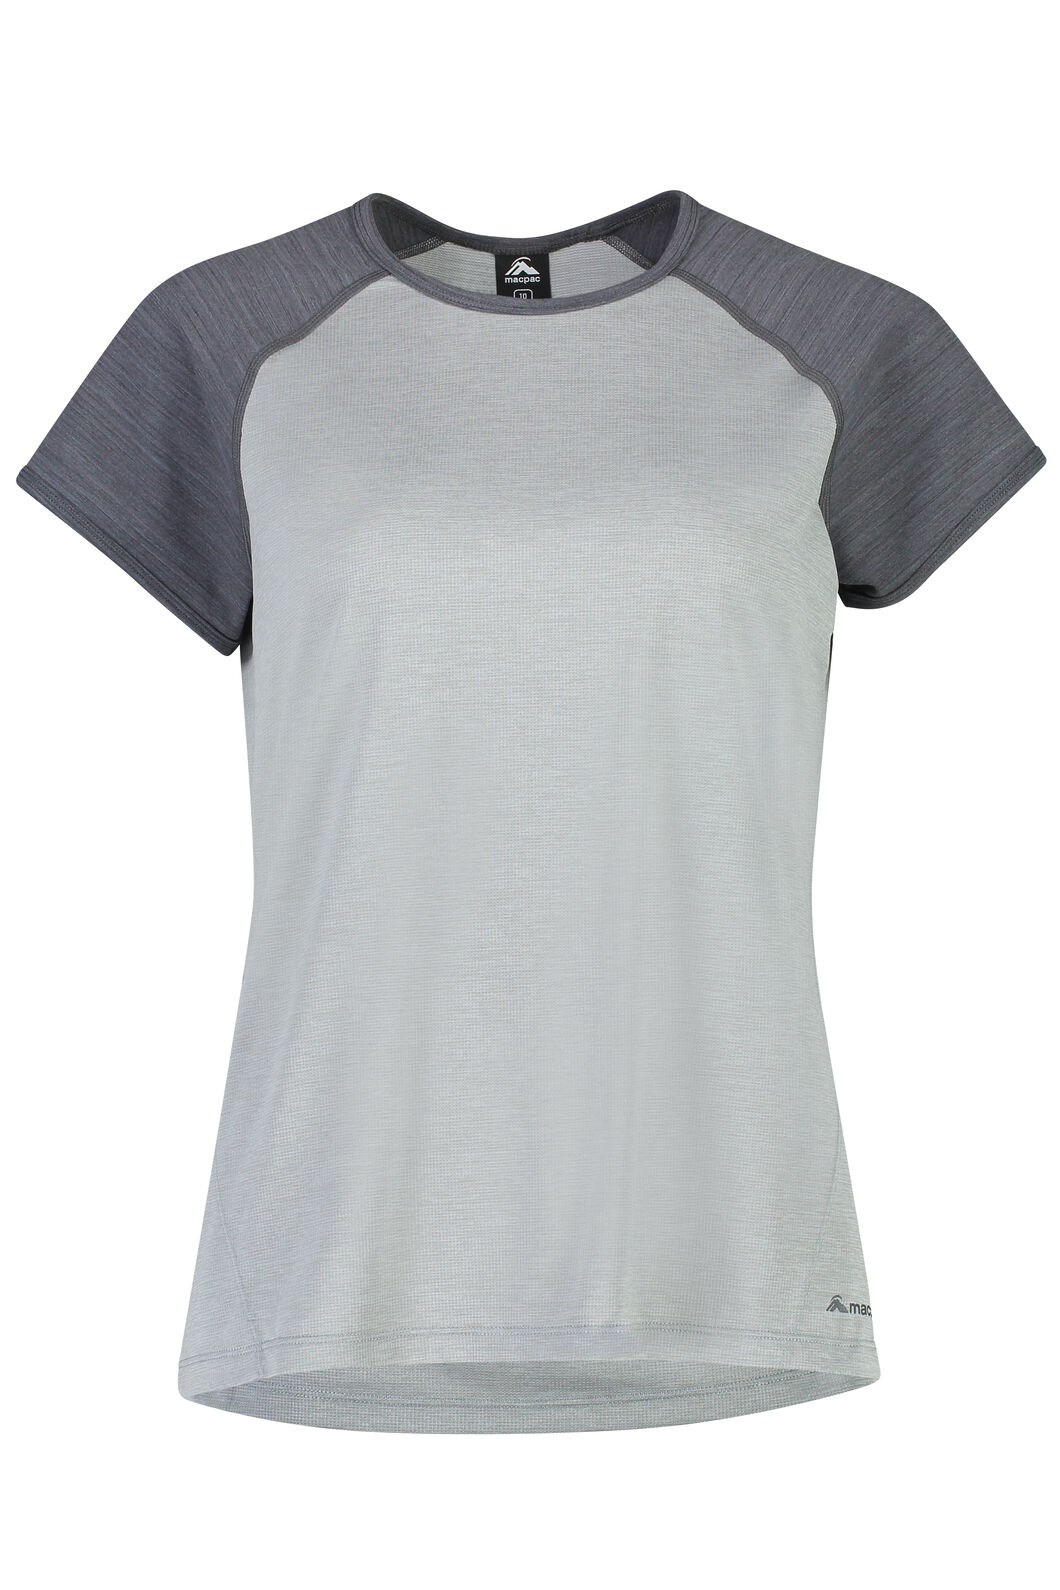 Take a Hike Short Sleeve Top - Women's, Pearl, hi-res